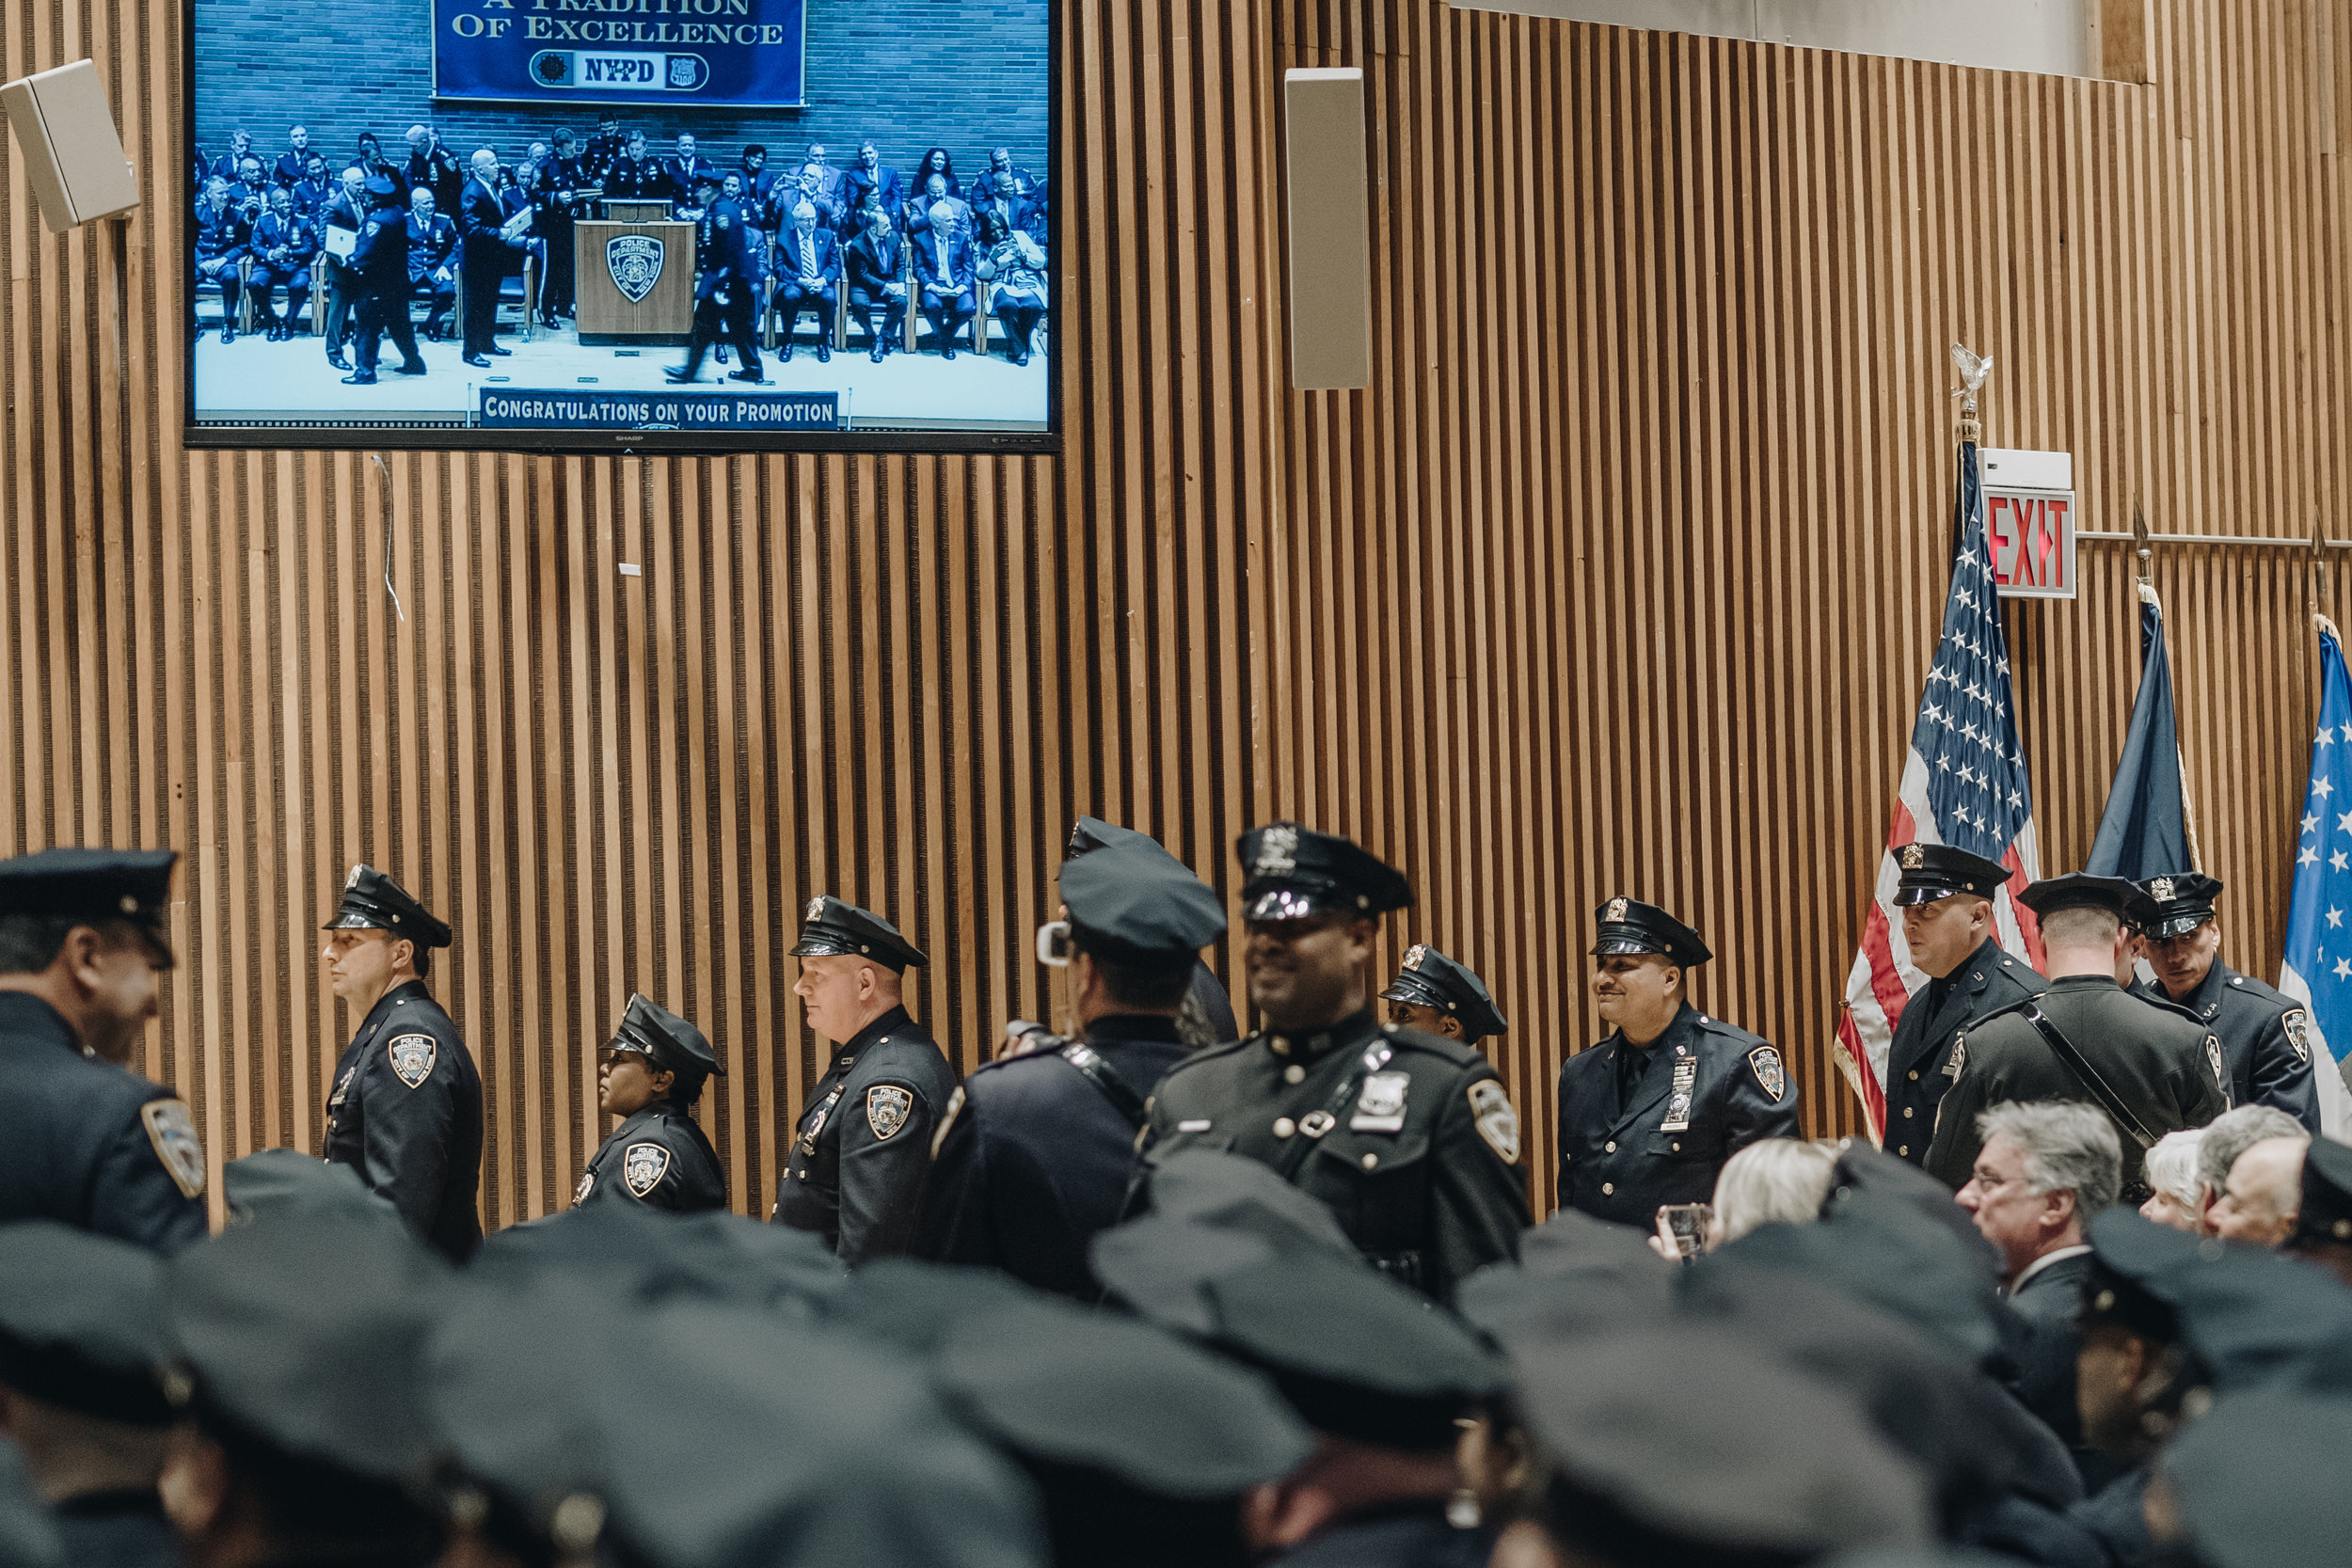 NYPD_Promotions-38.jpg